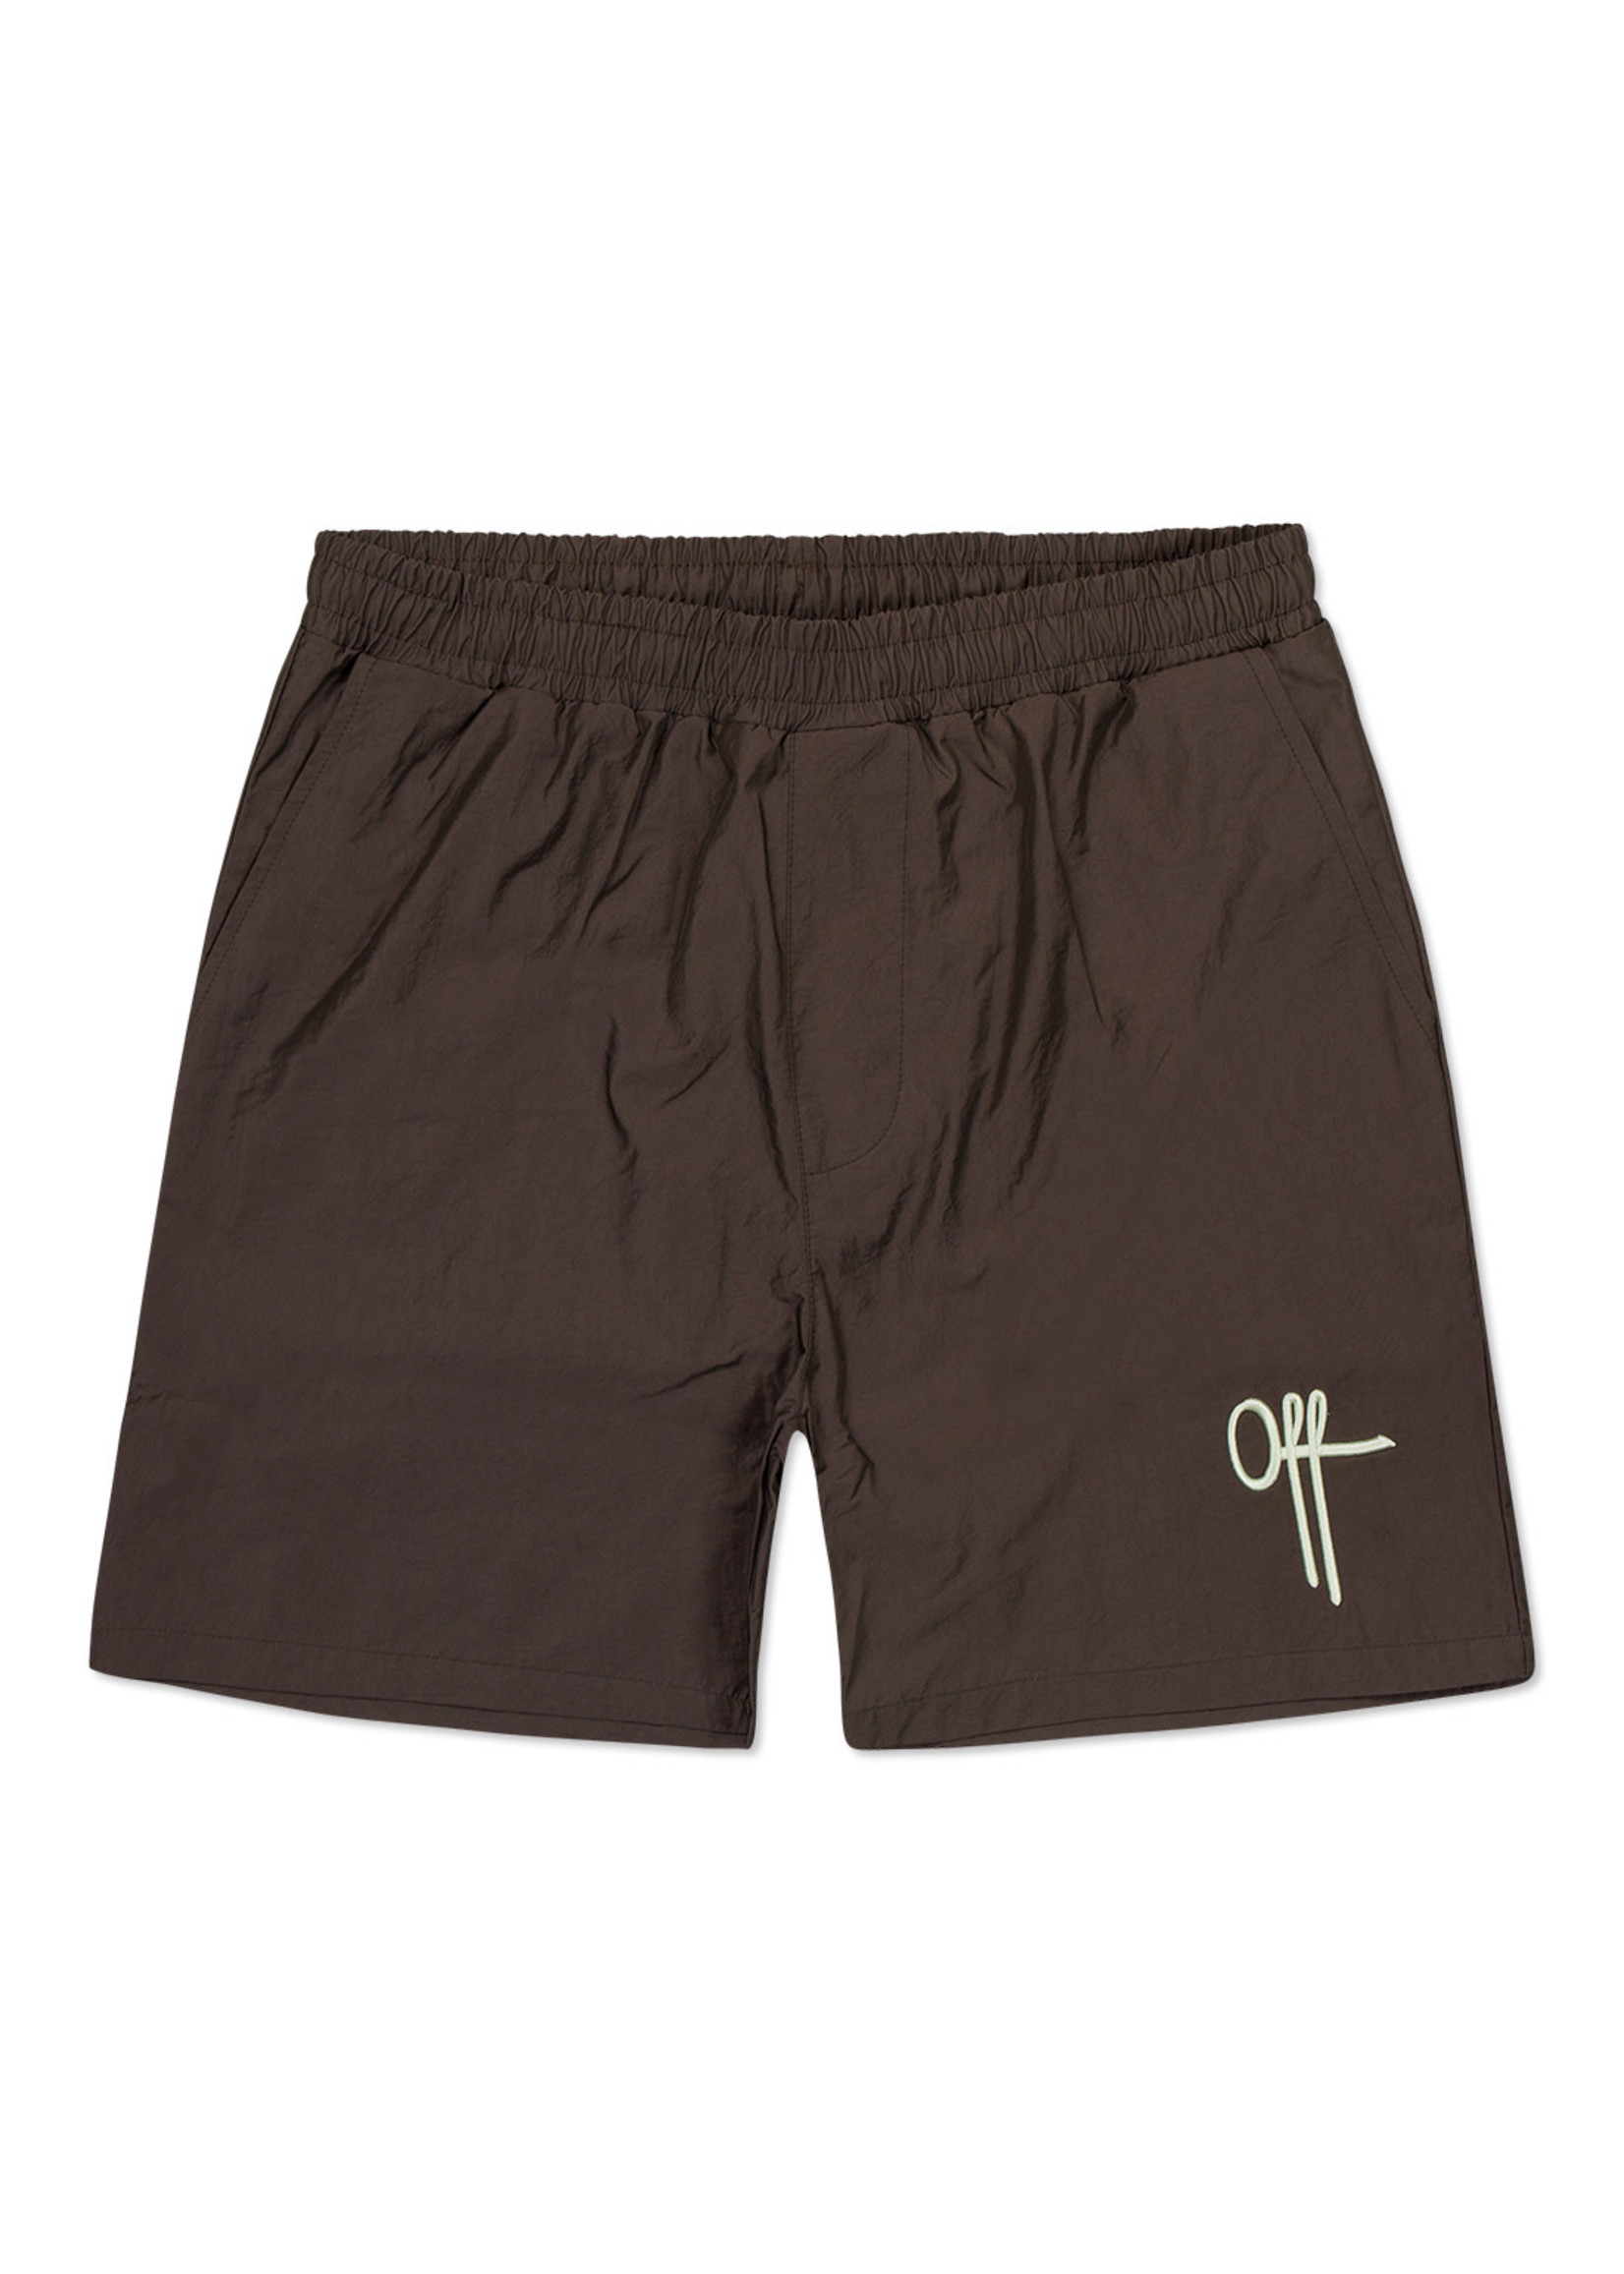 OFF THE PITCH The Comet Short - Green